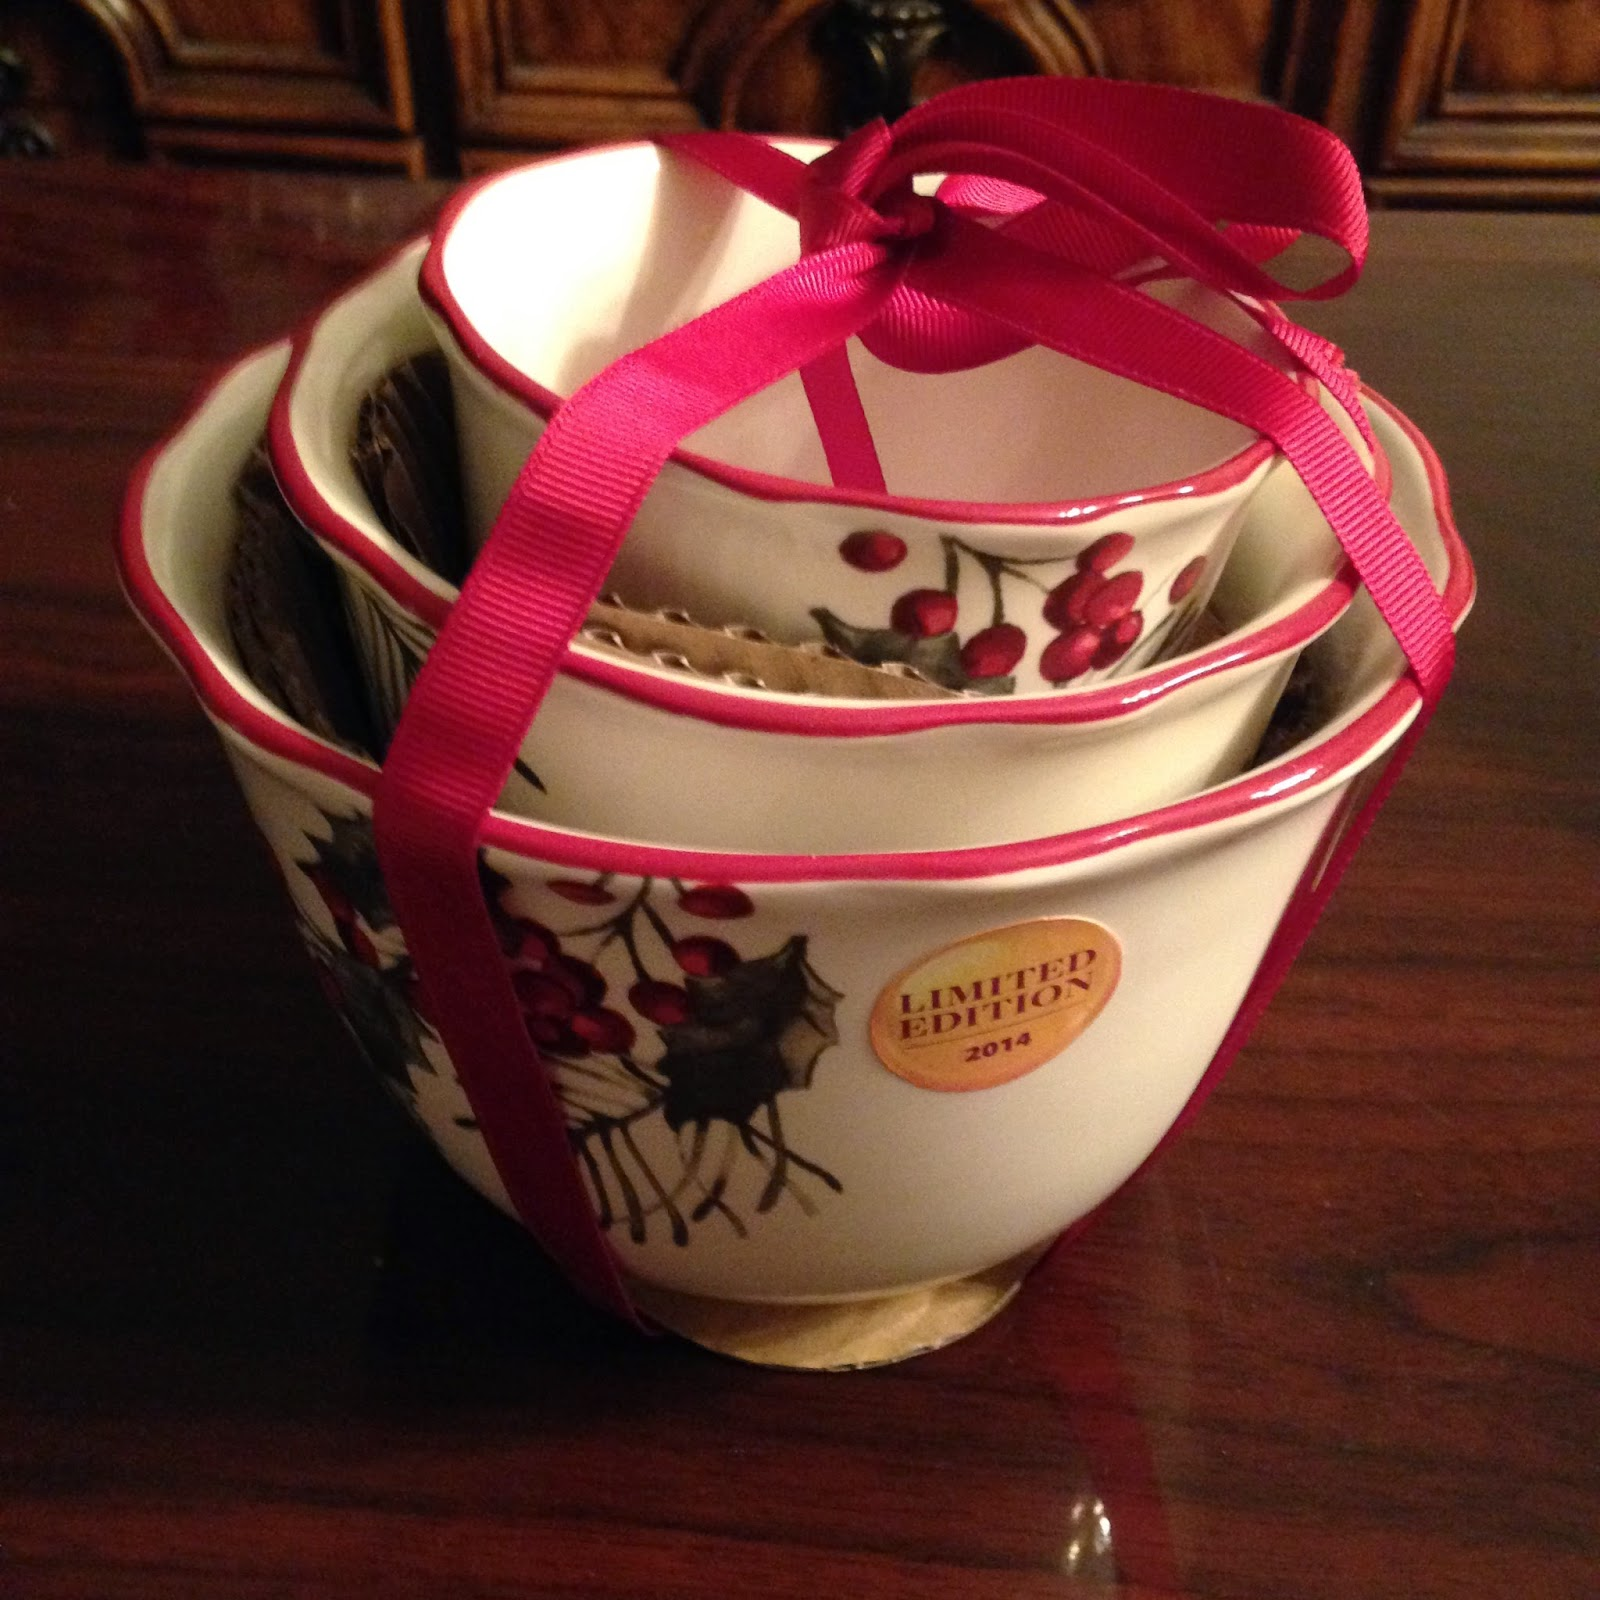 2014 better homes and gardens christmas nesting bowl set 748 in store only